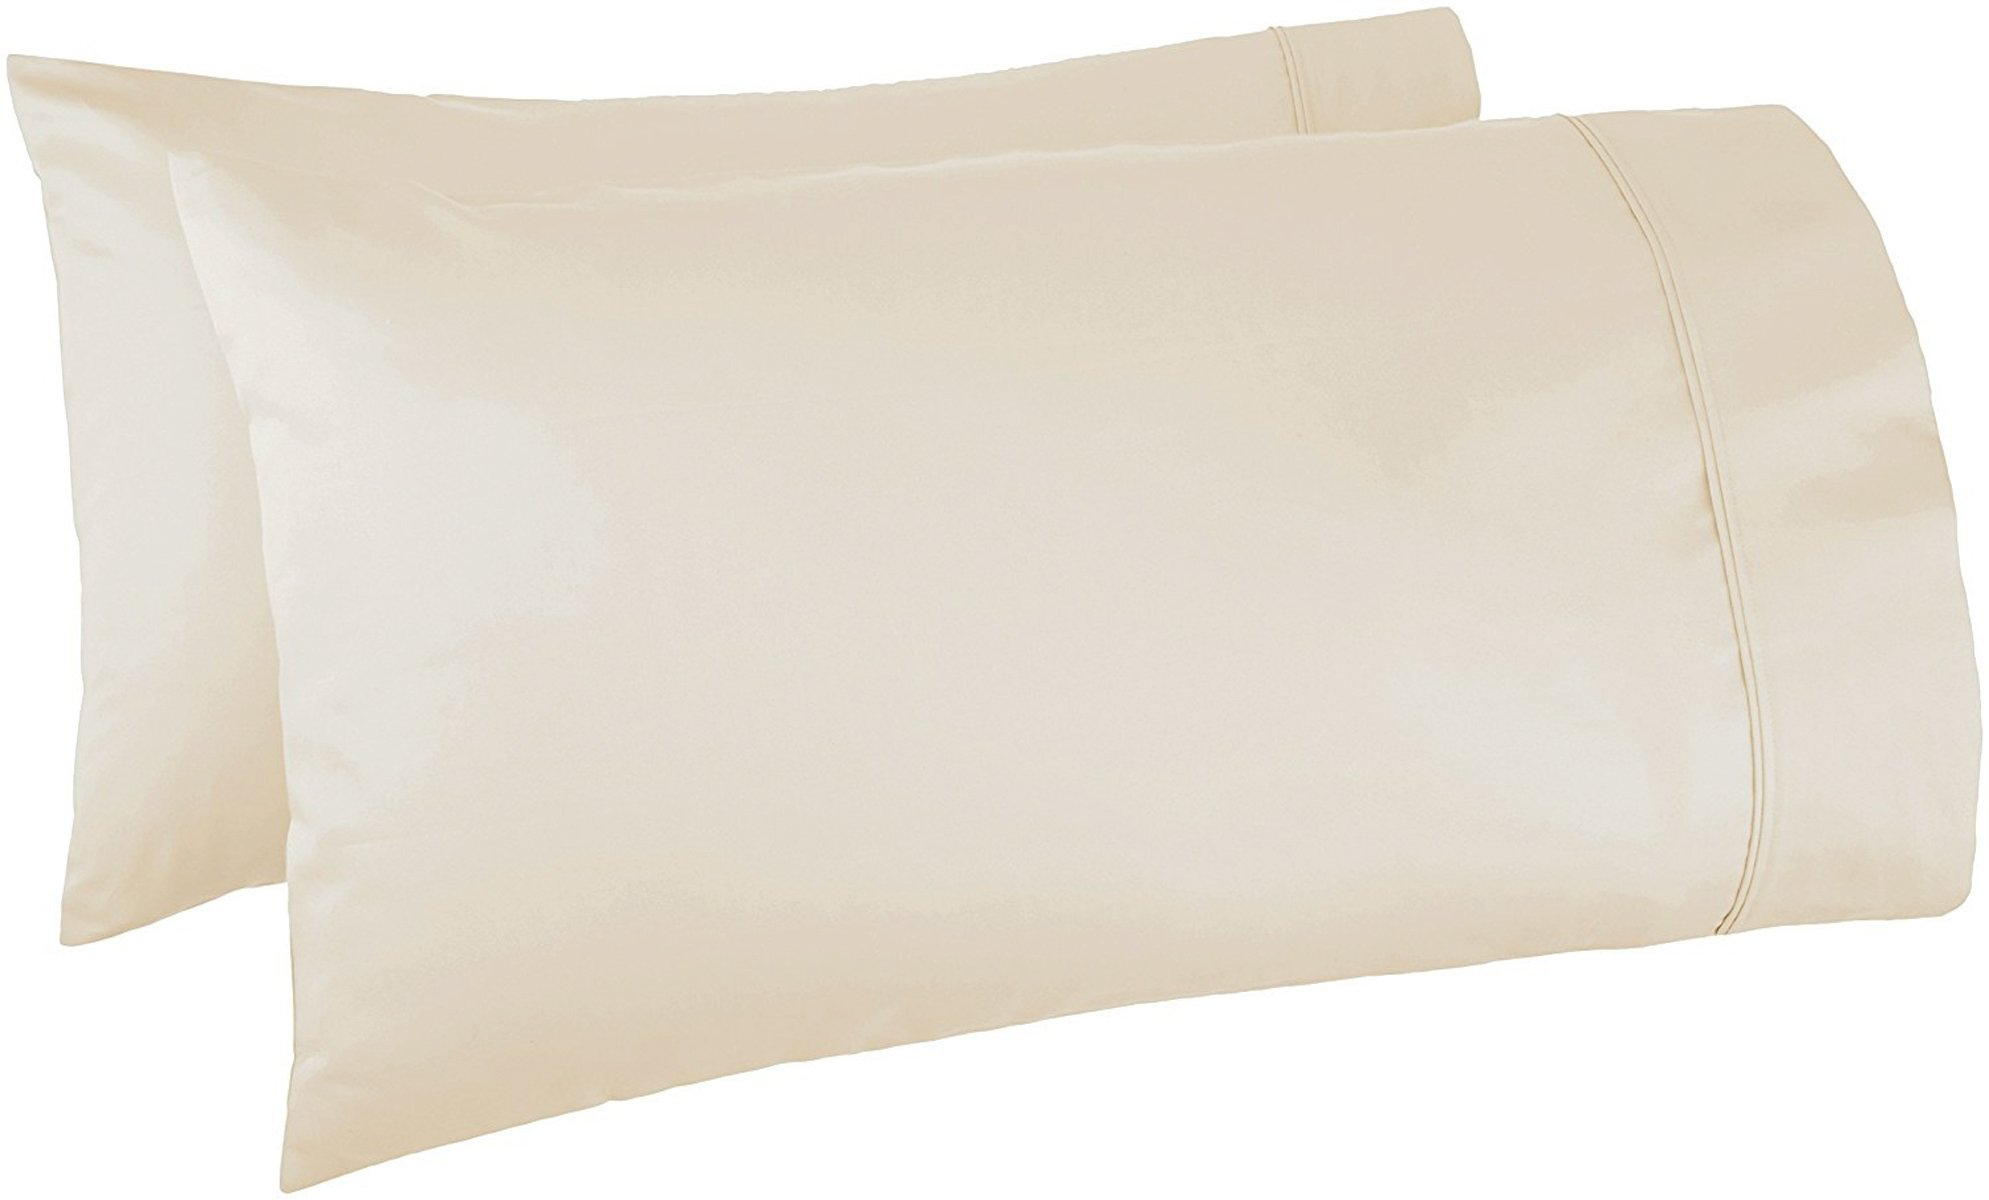 Kaveri Home 100% Egyptian Cotton Organic 1000 Thread Count All Season 2 Piece Hotel Collection Pillow Case Standard Size Washable and Removable (20'' x 30'') Light Beige.